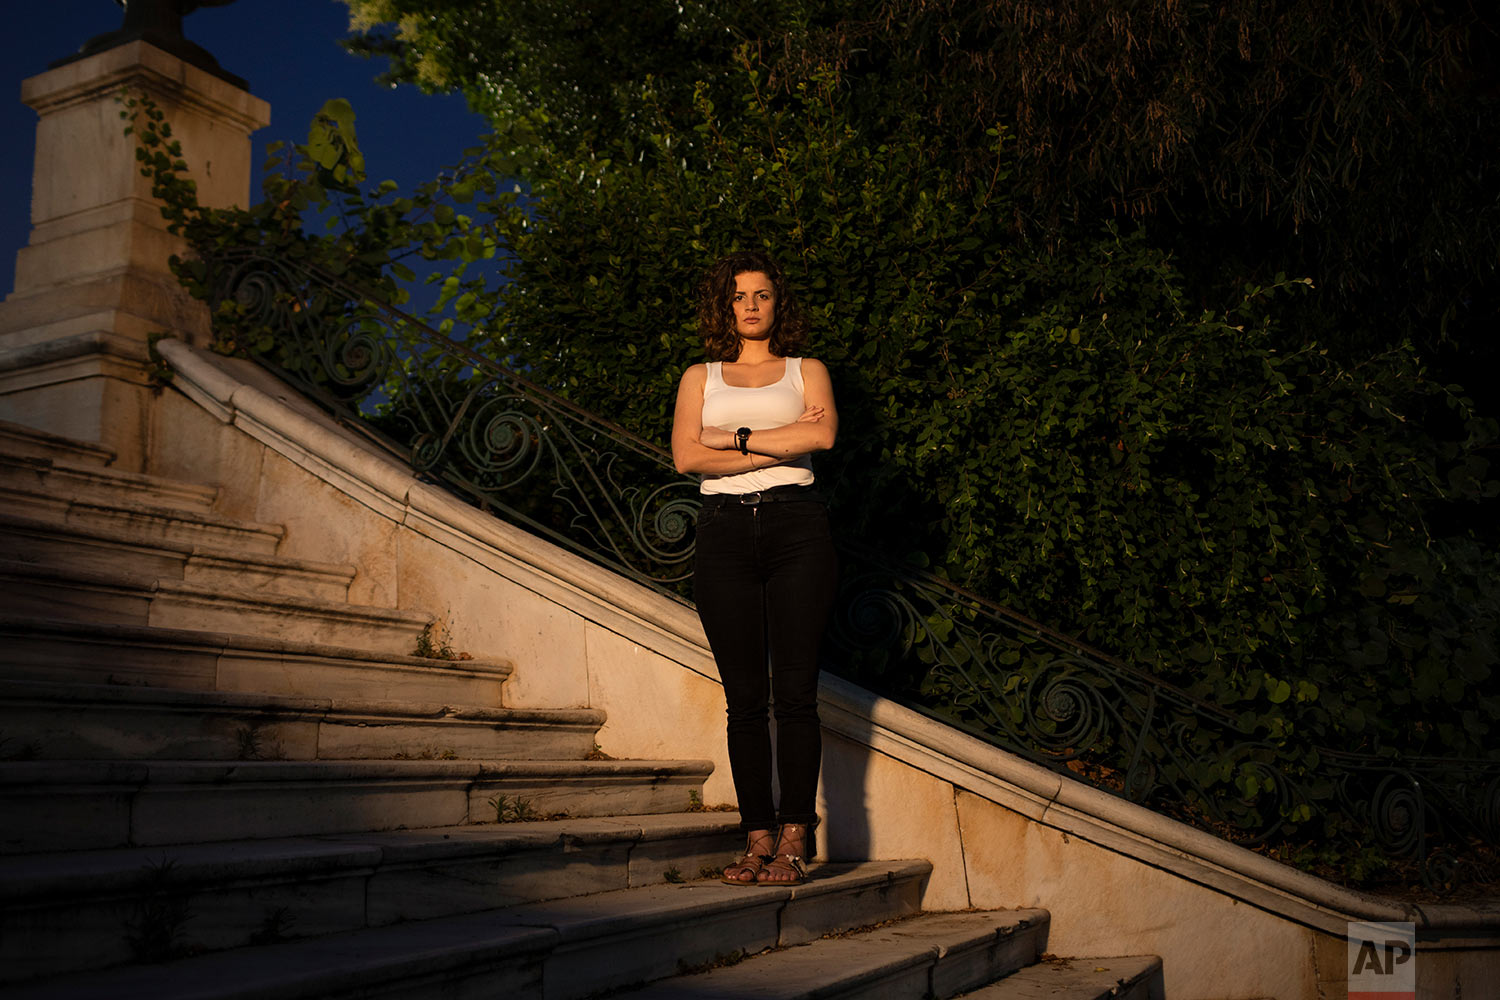 In this Monday June 24, 2019 photo Martha Markopoulou, a 24-year-old university student, poses for a photo in Athens.. (AP Photo/Petros Giannakouris)